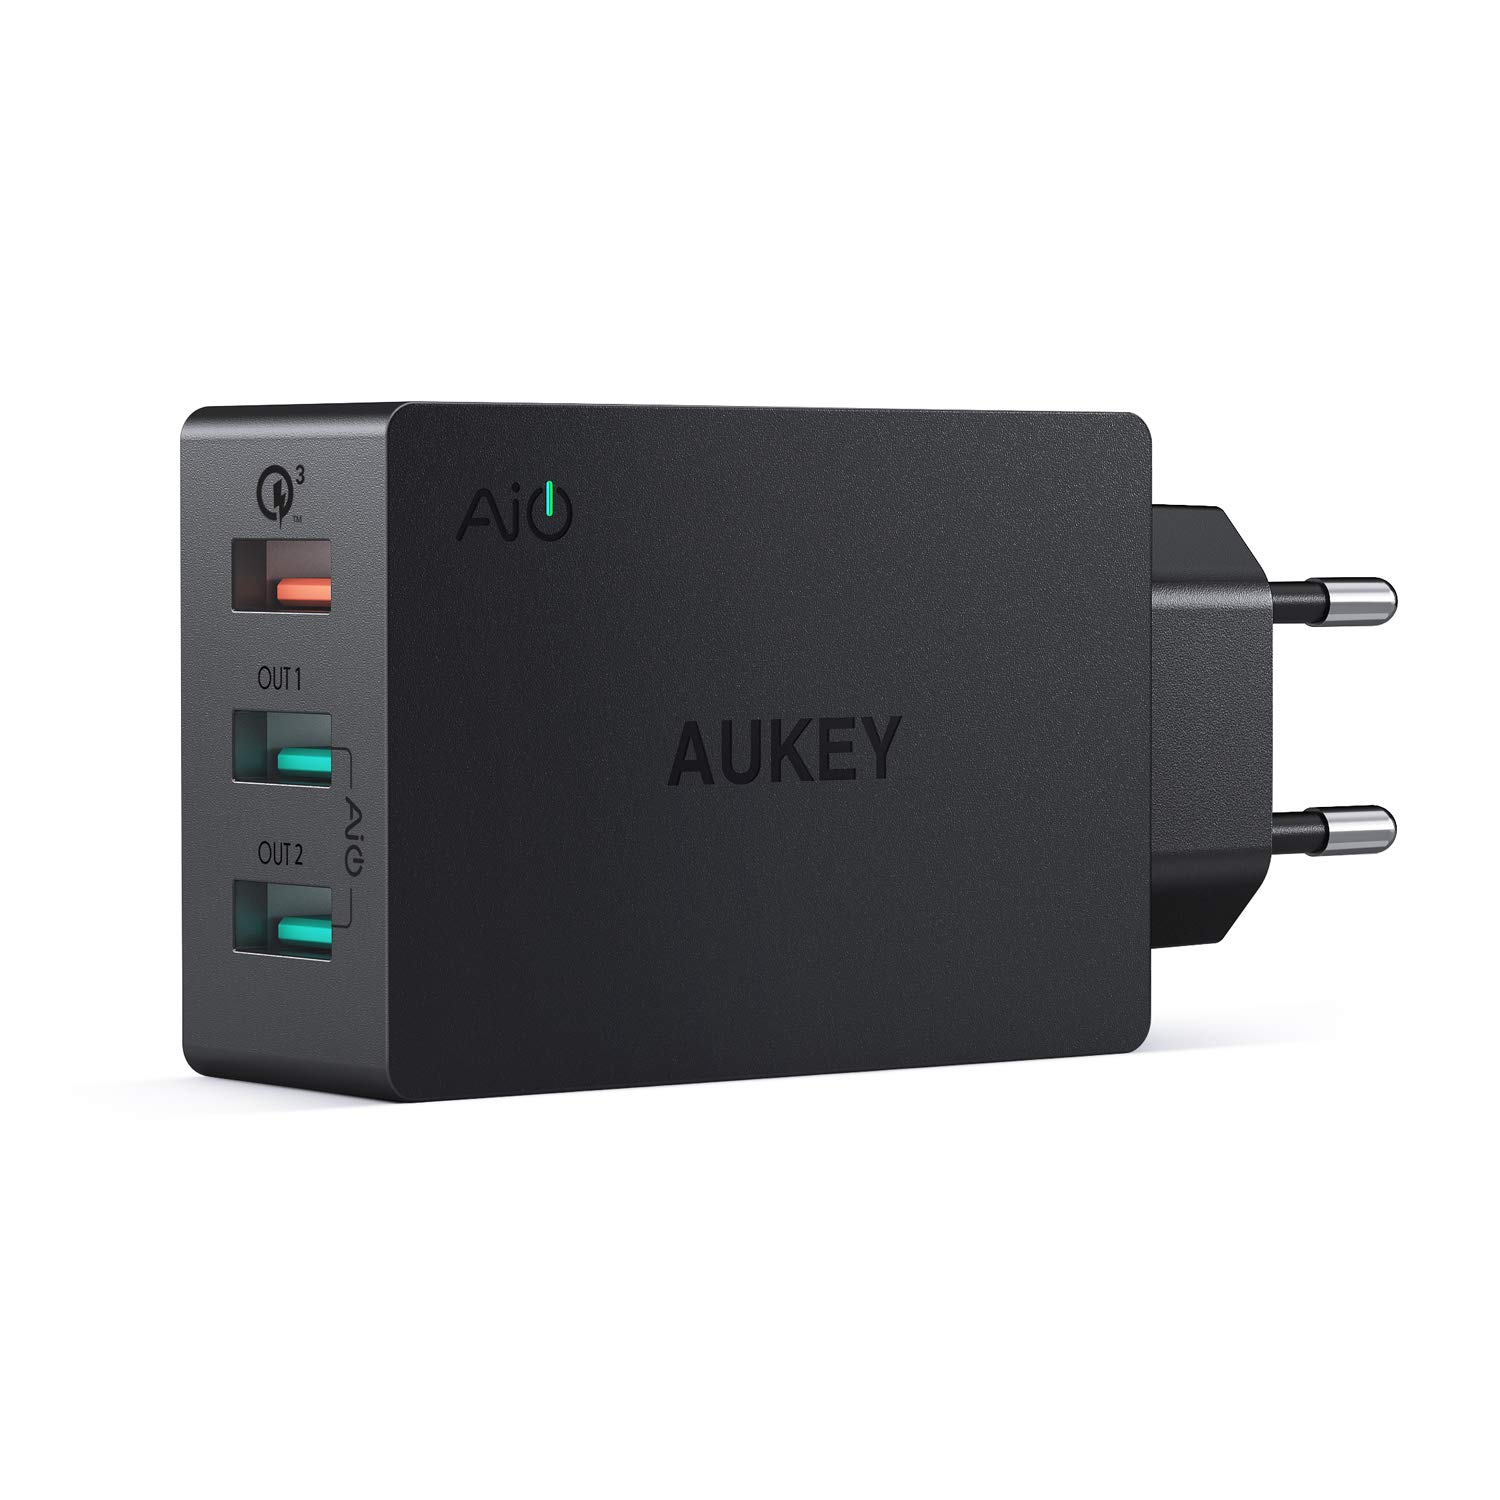 AUKEY Quick Charge 3.0 Caricatore USB da Muro 43,5W